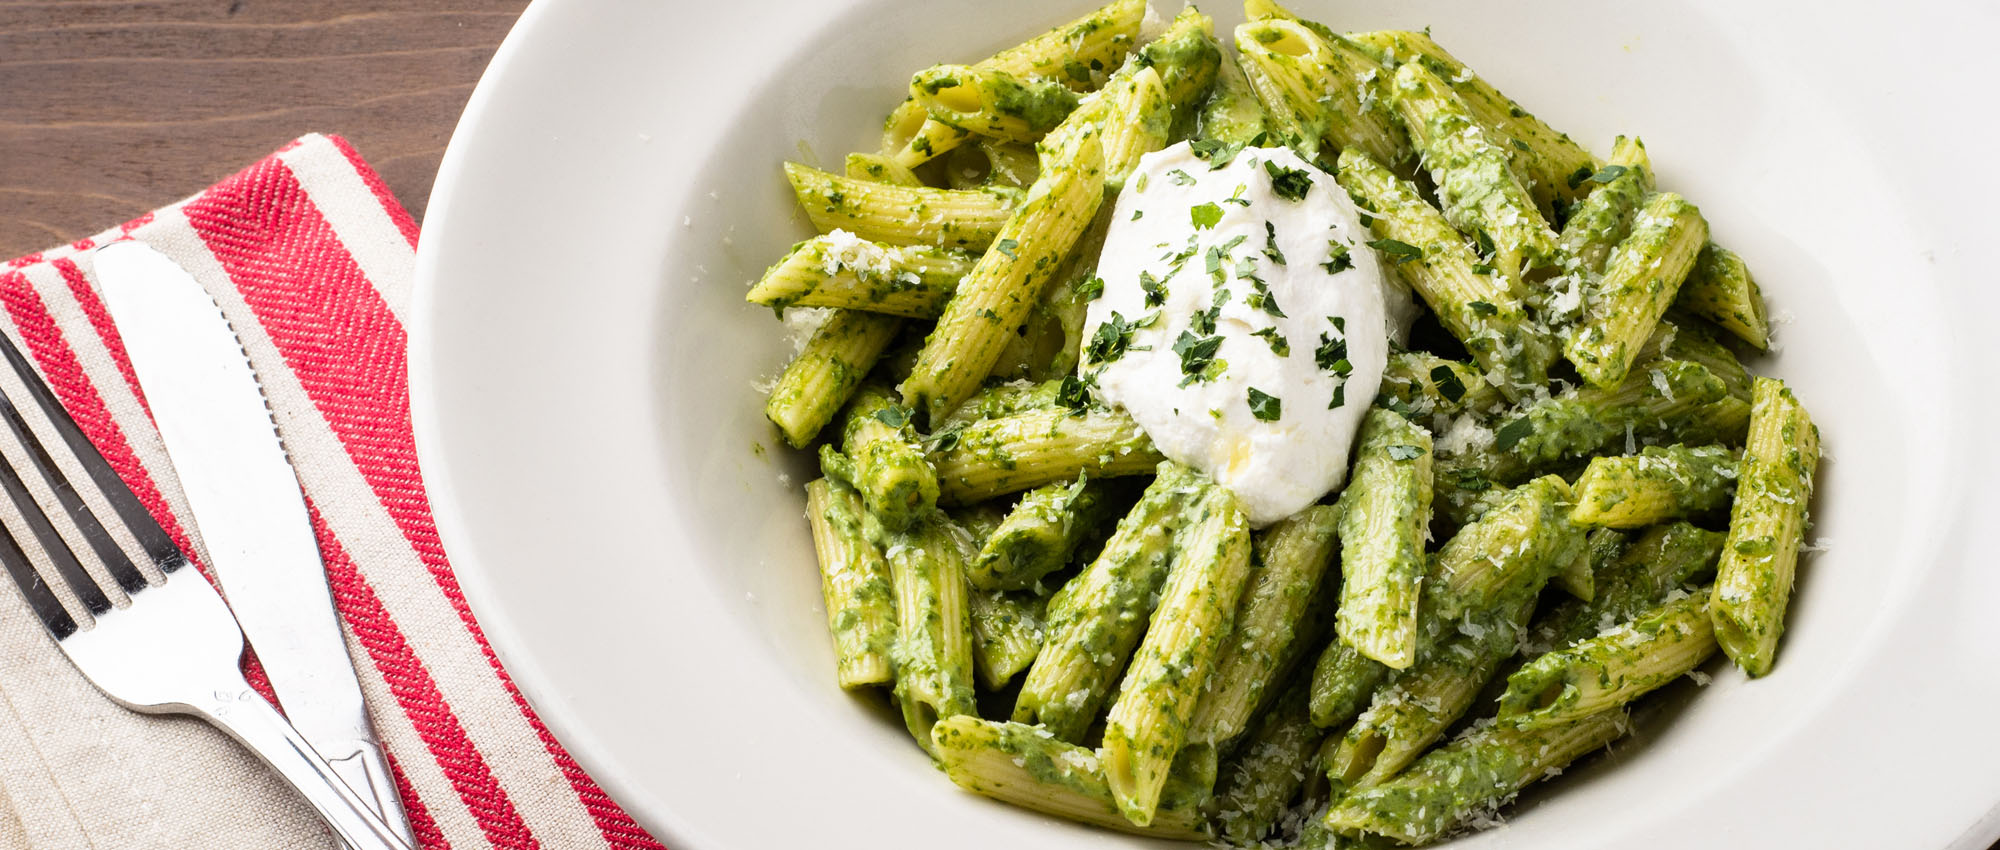 Penne pasta with spinach cream sauce and cheese